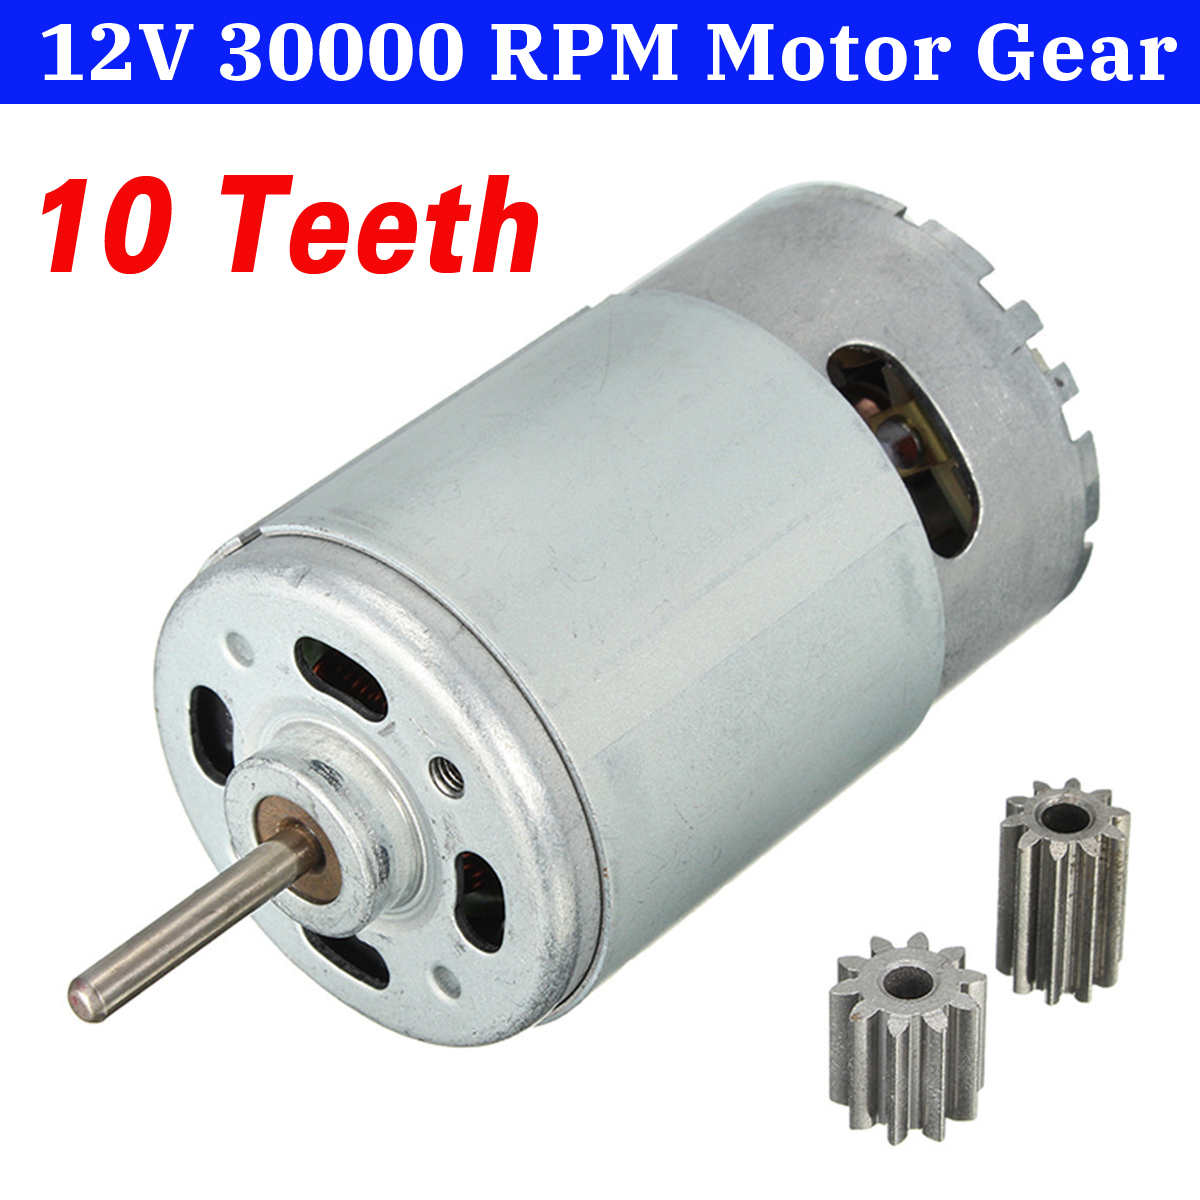 DC 12V 30000 RPM Motor Gears Rotary Speed Gear Box Motor For Kids RC Ride on Car Spare Parts 10Teeth 12 Volt applicatori di etichette manuali